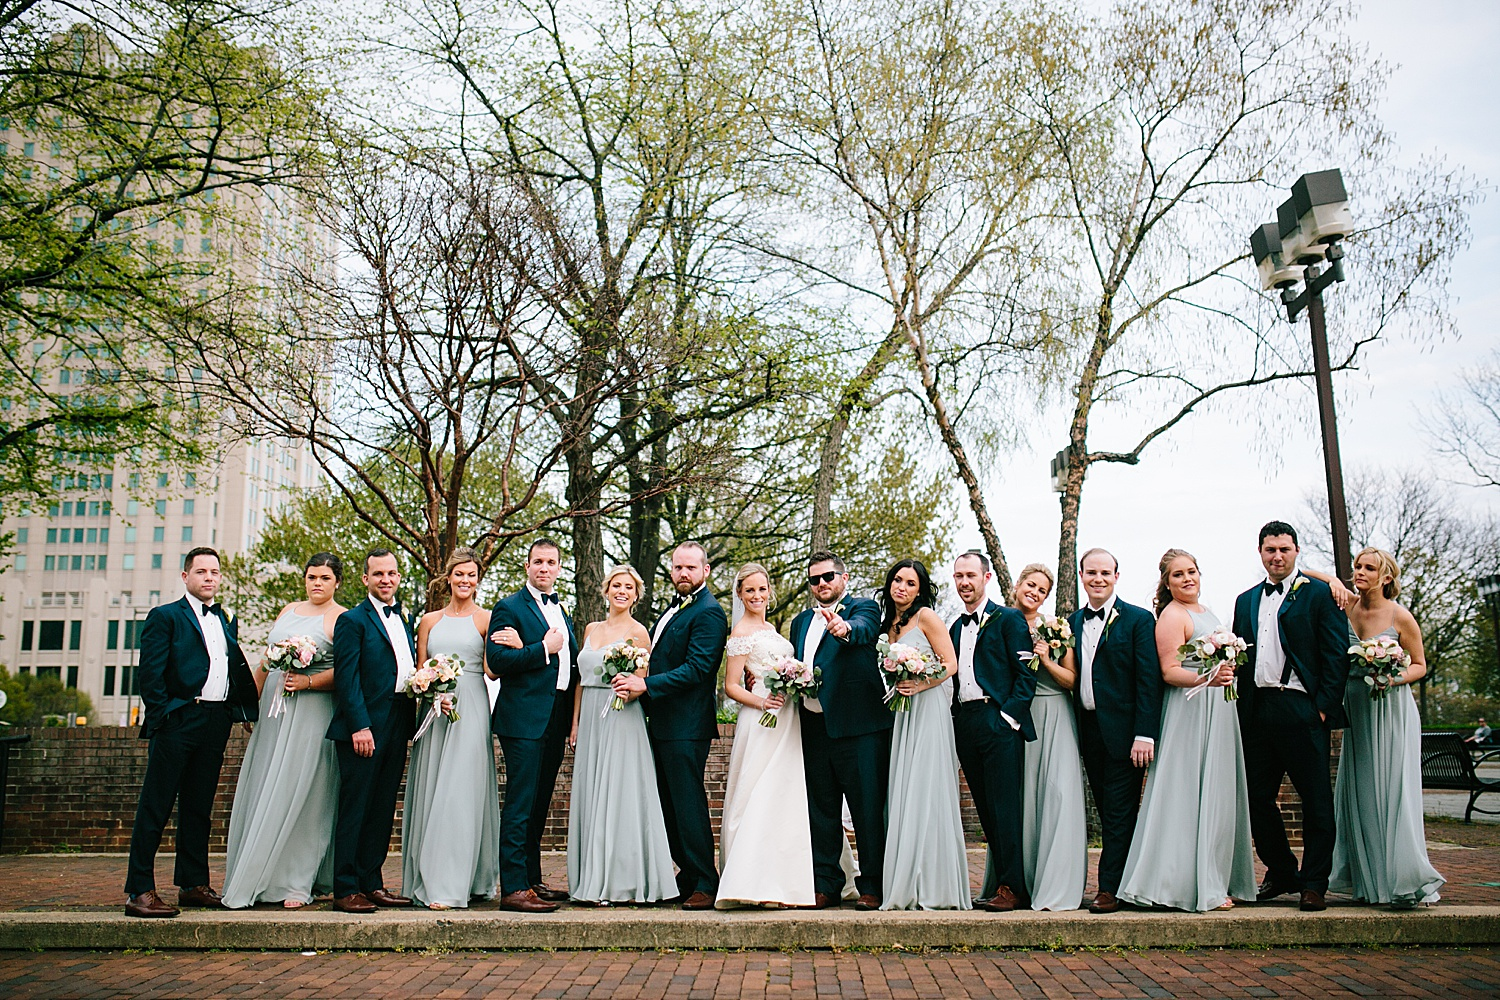 courtneyryan_sheraton_societyhill_philadelphia_merchantsexchange_wedding_image079.jpg